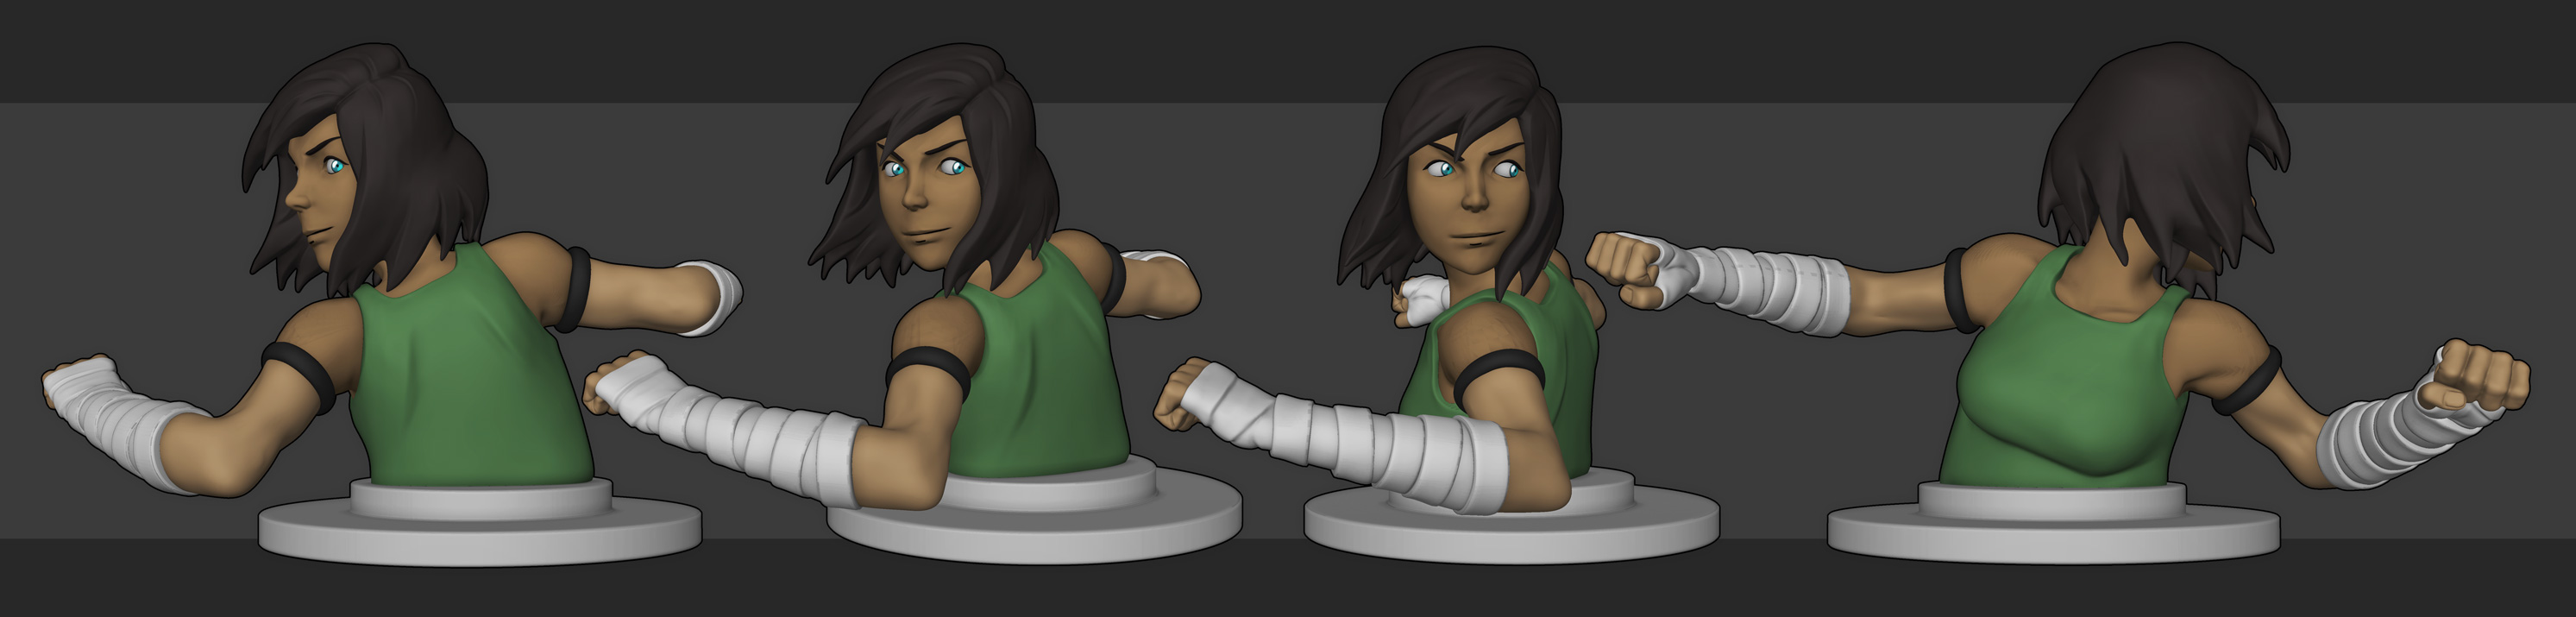 _wip_2__korra___earth_kingdom_outfit_by_yuliuskrisna-d8m6mcc.jpg